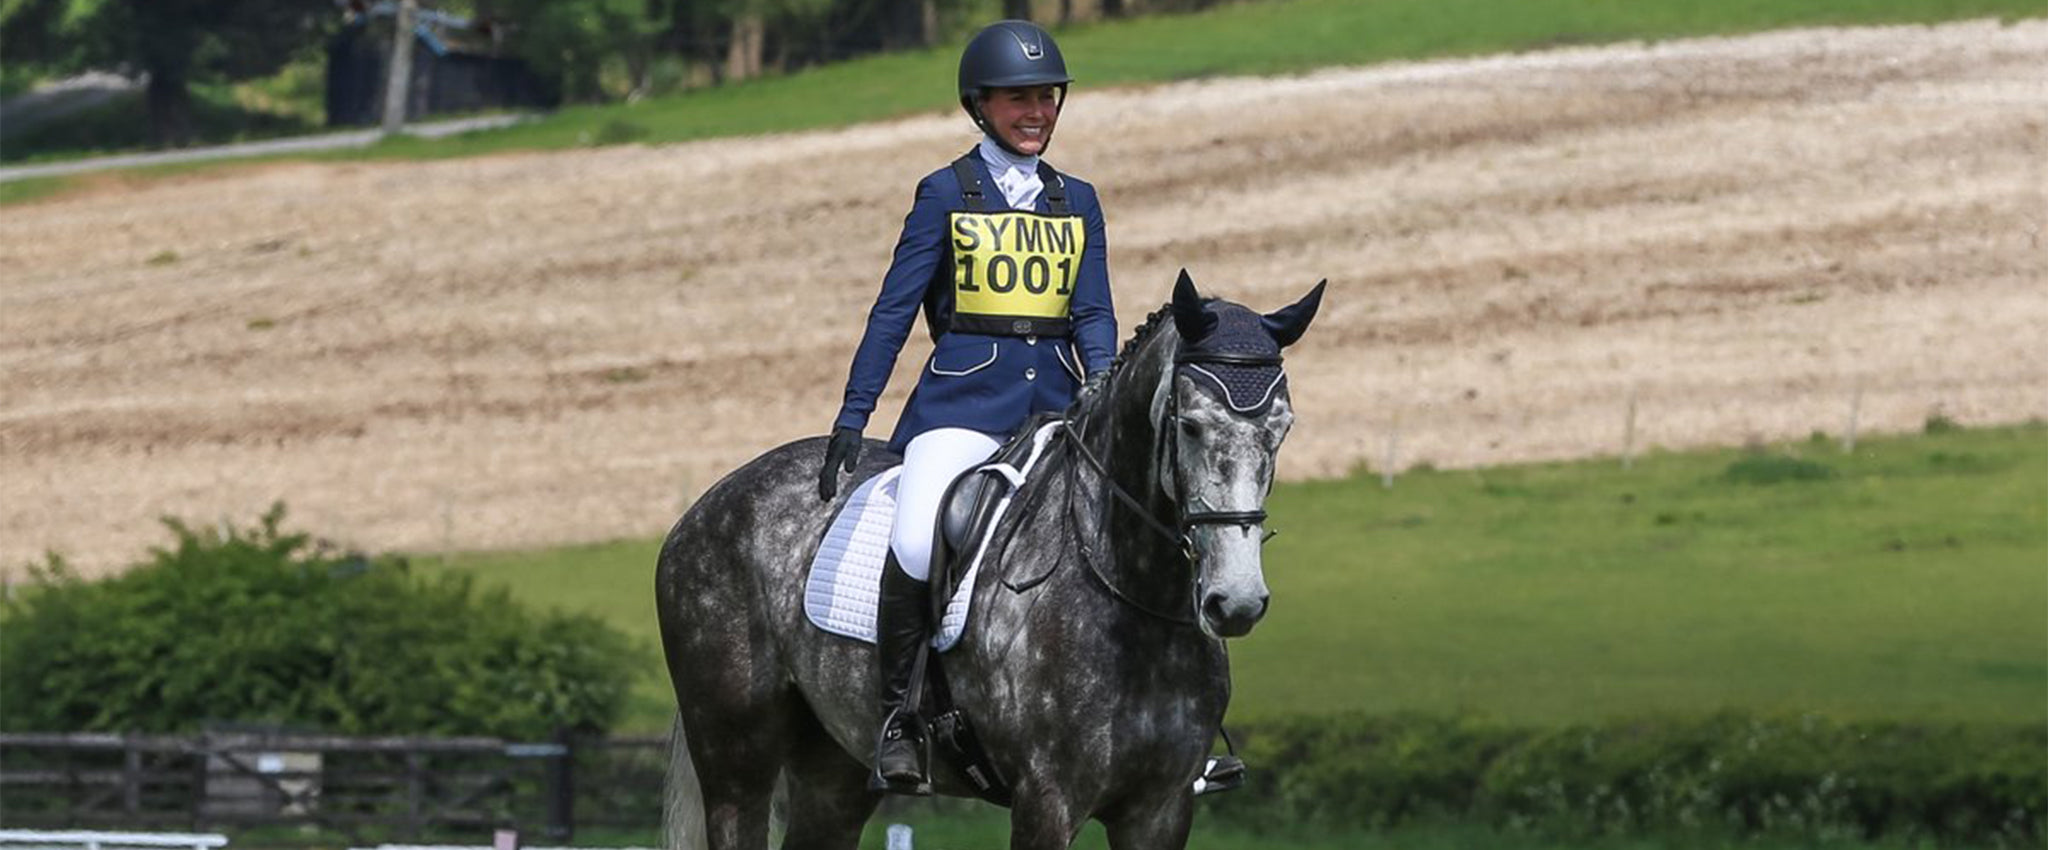 Uptown E Store Equestrian Lifestyle And Fashion